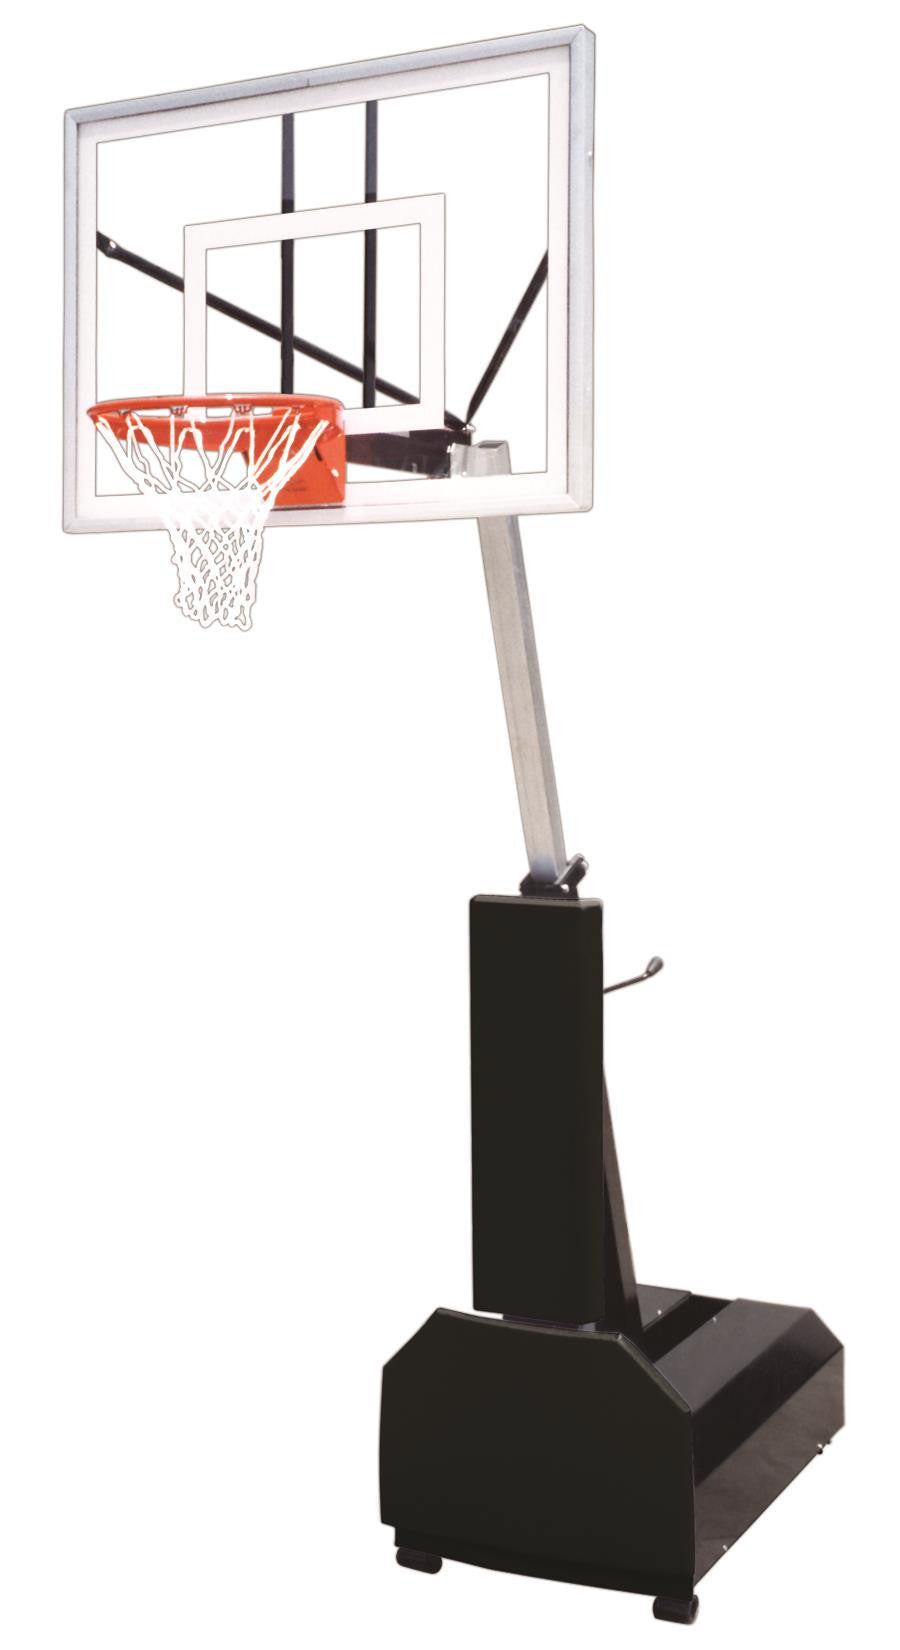 First Team Fury Turbo Adjustable Portable Basketball Hoop 54 inch Tempered Glass